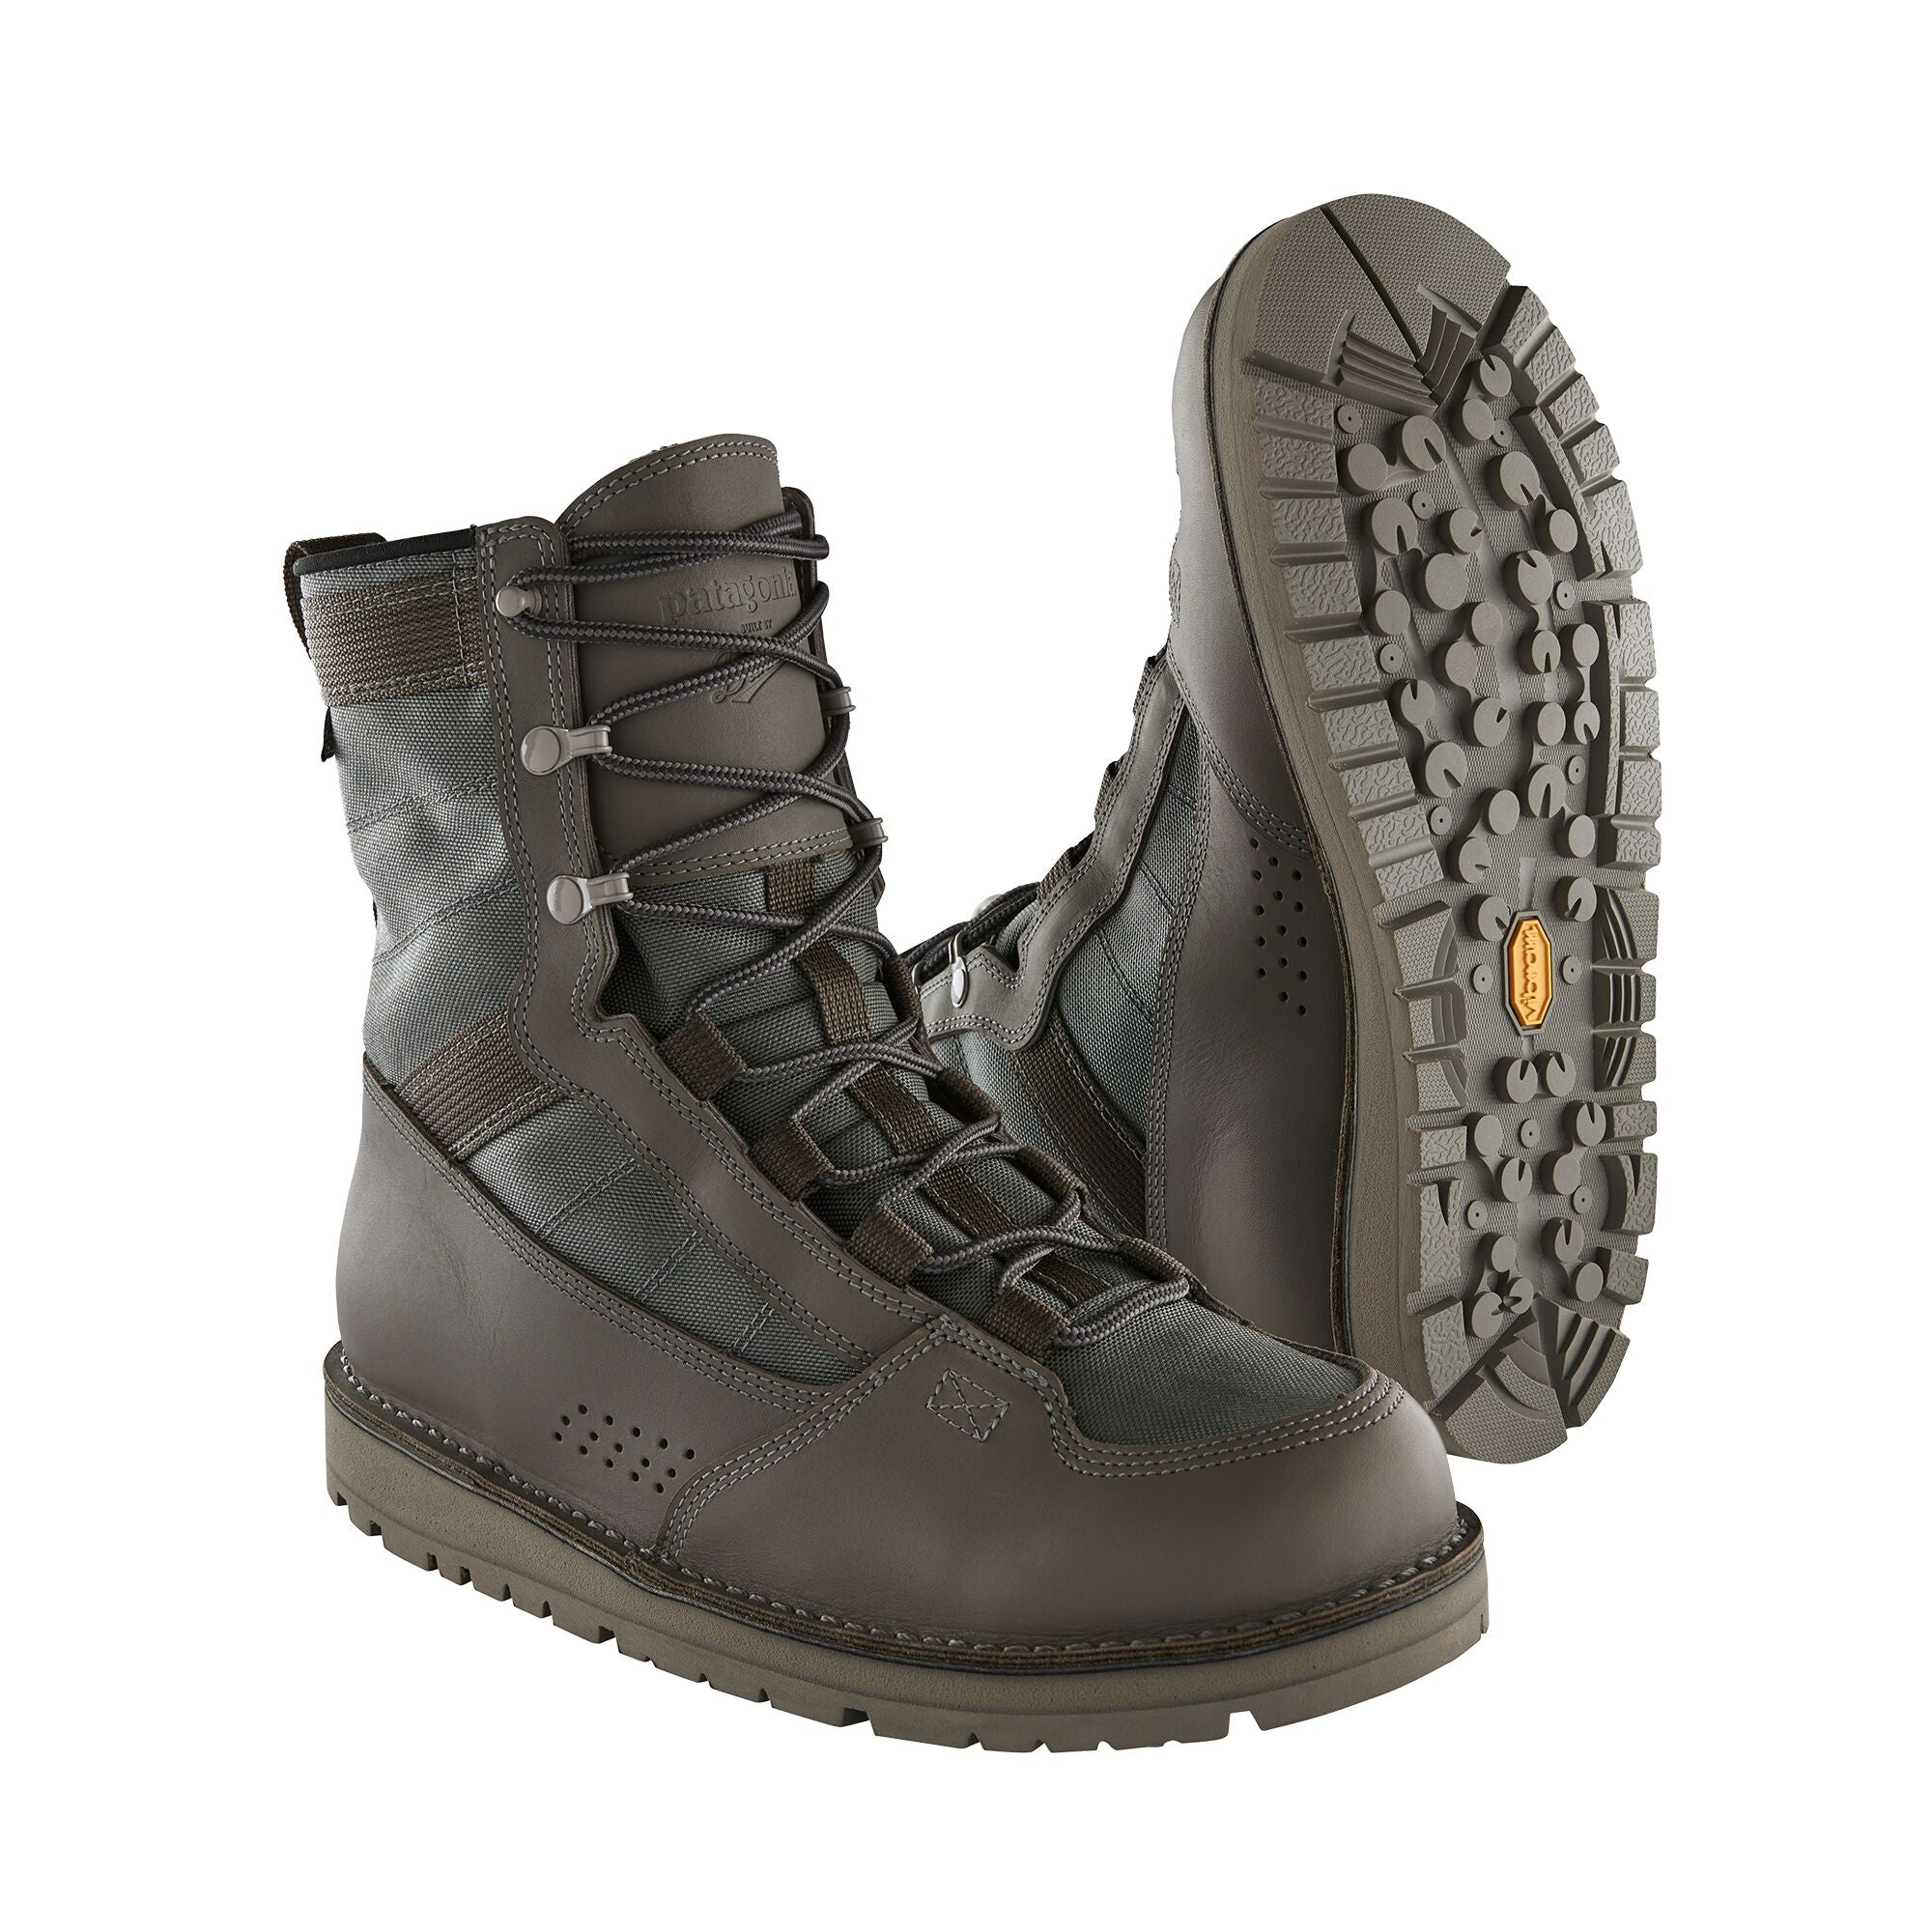 Patagonia River Salt Wading Boots Feather Grey